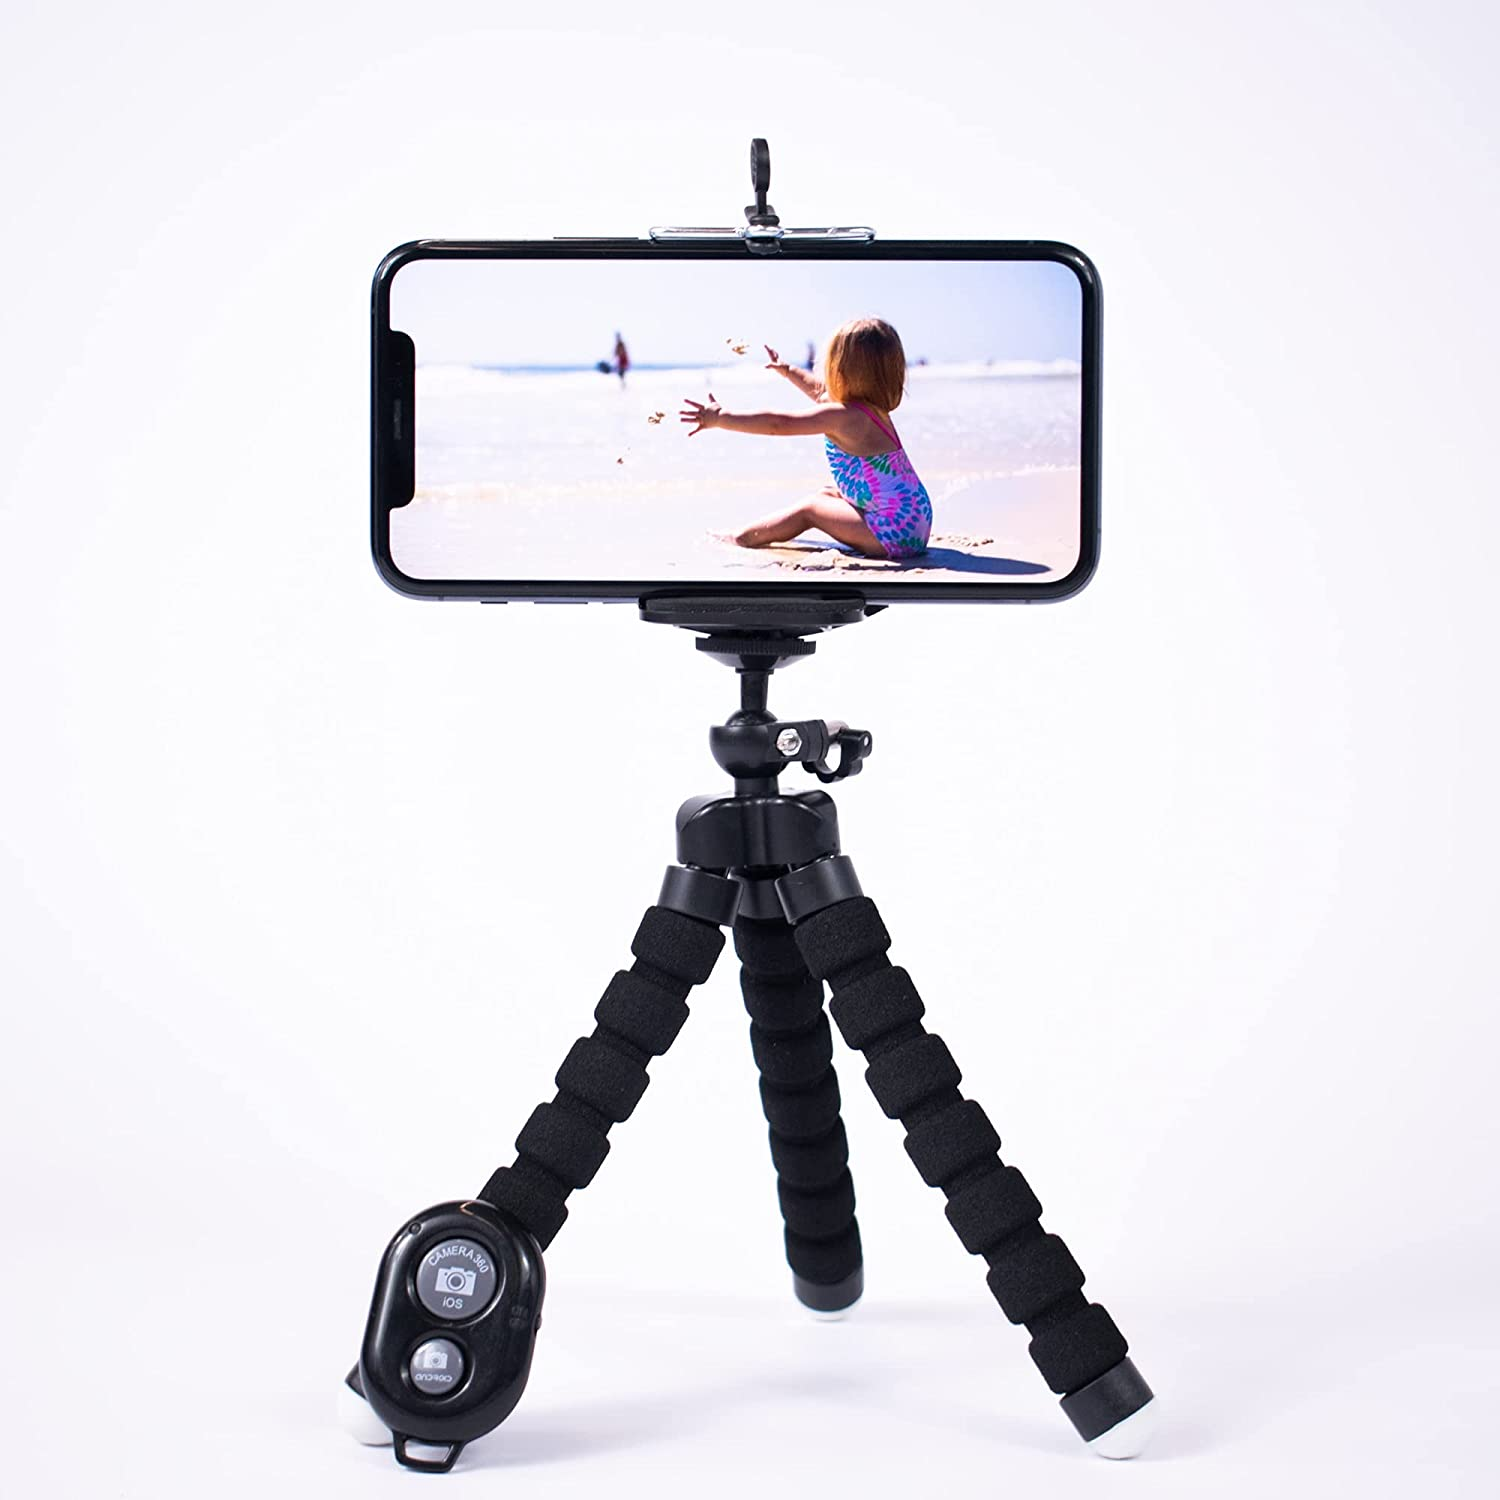 Veloce Octopus Mini Wholesale Tripod iPhone Stand with Sale Wi Flexible